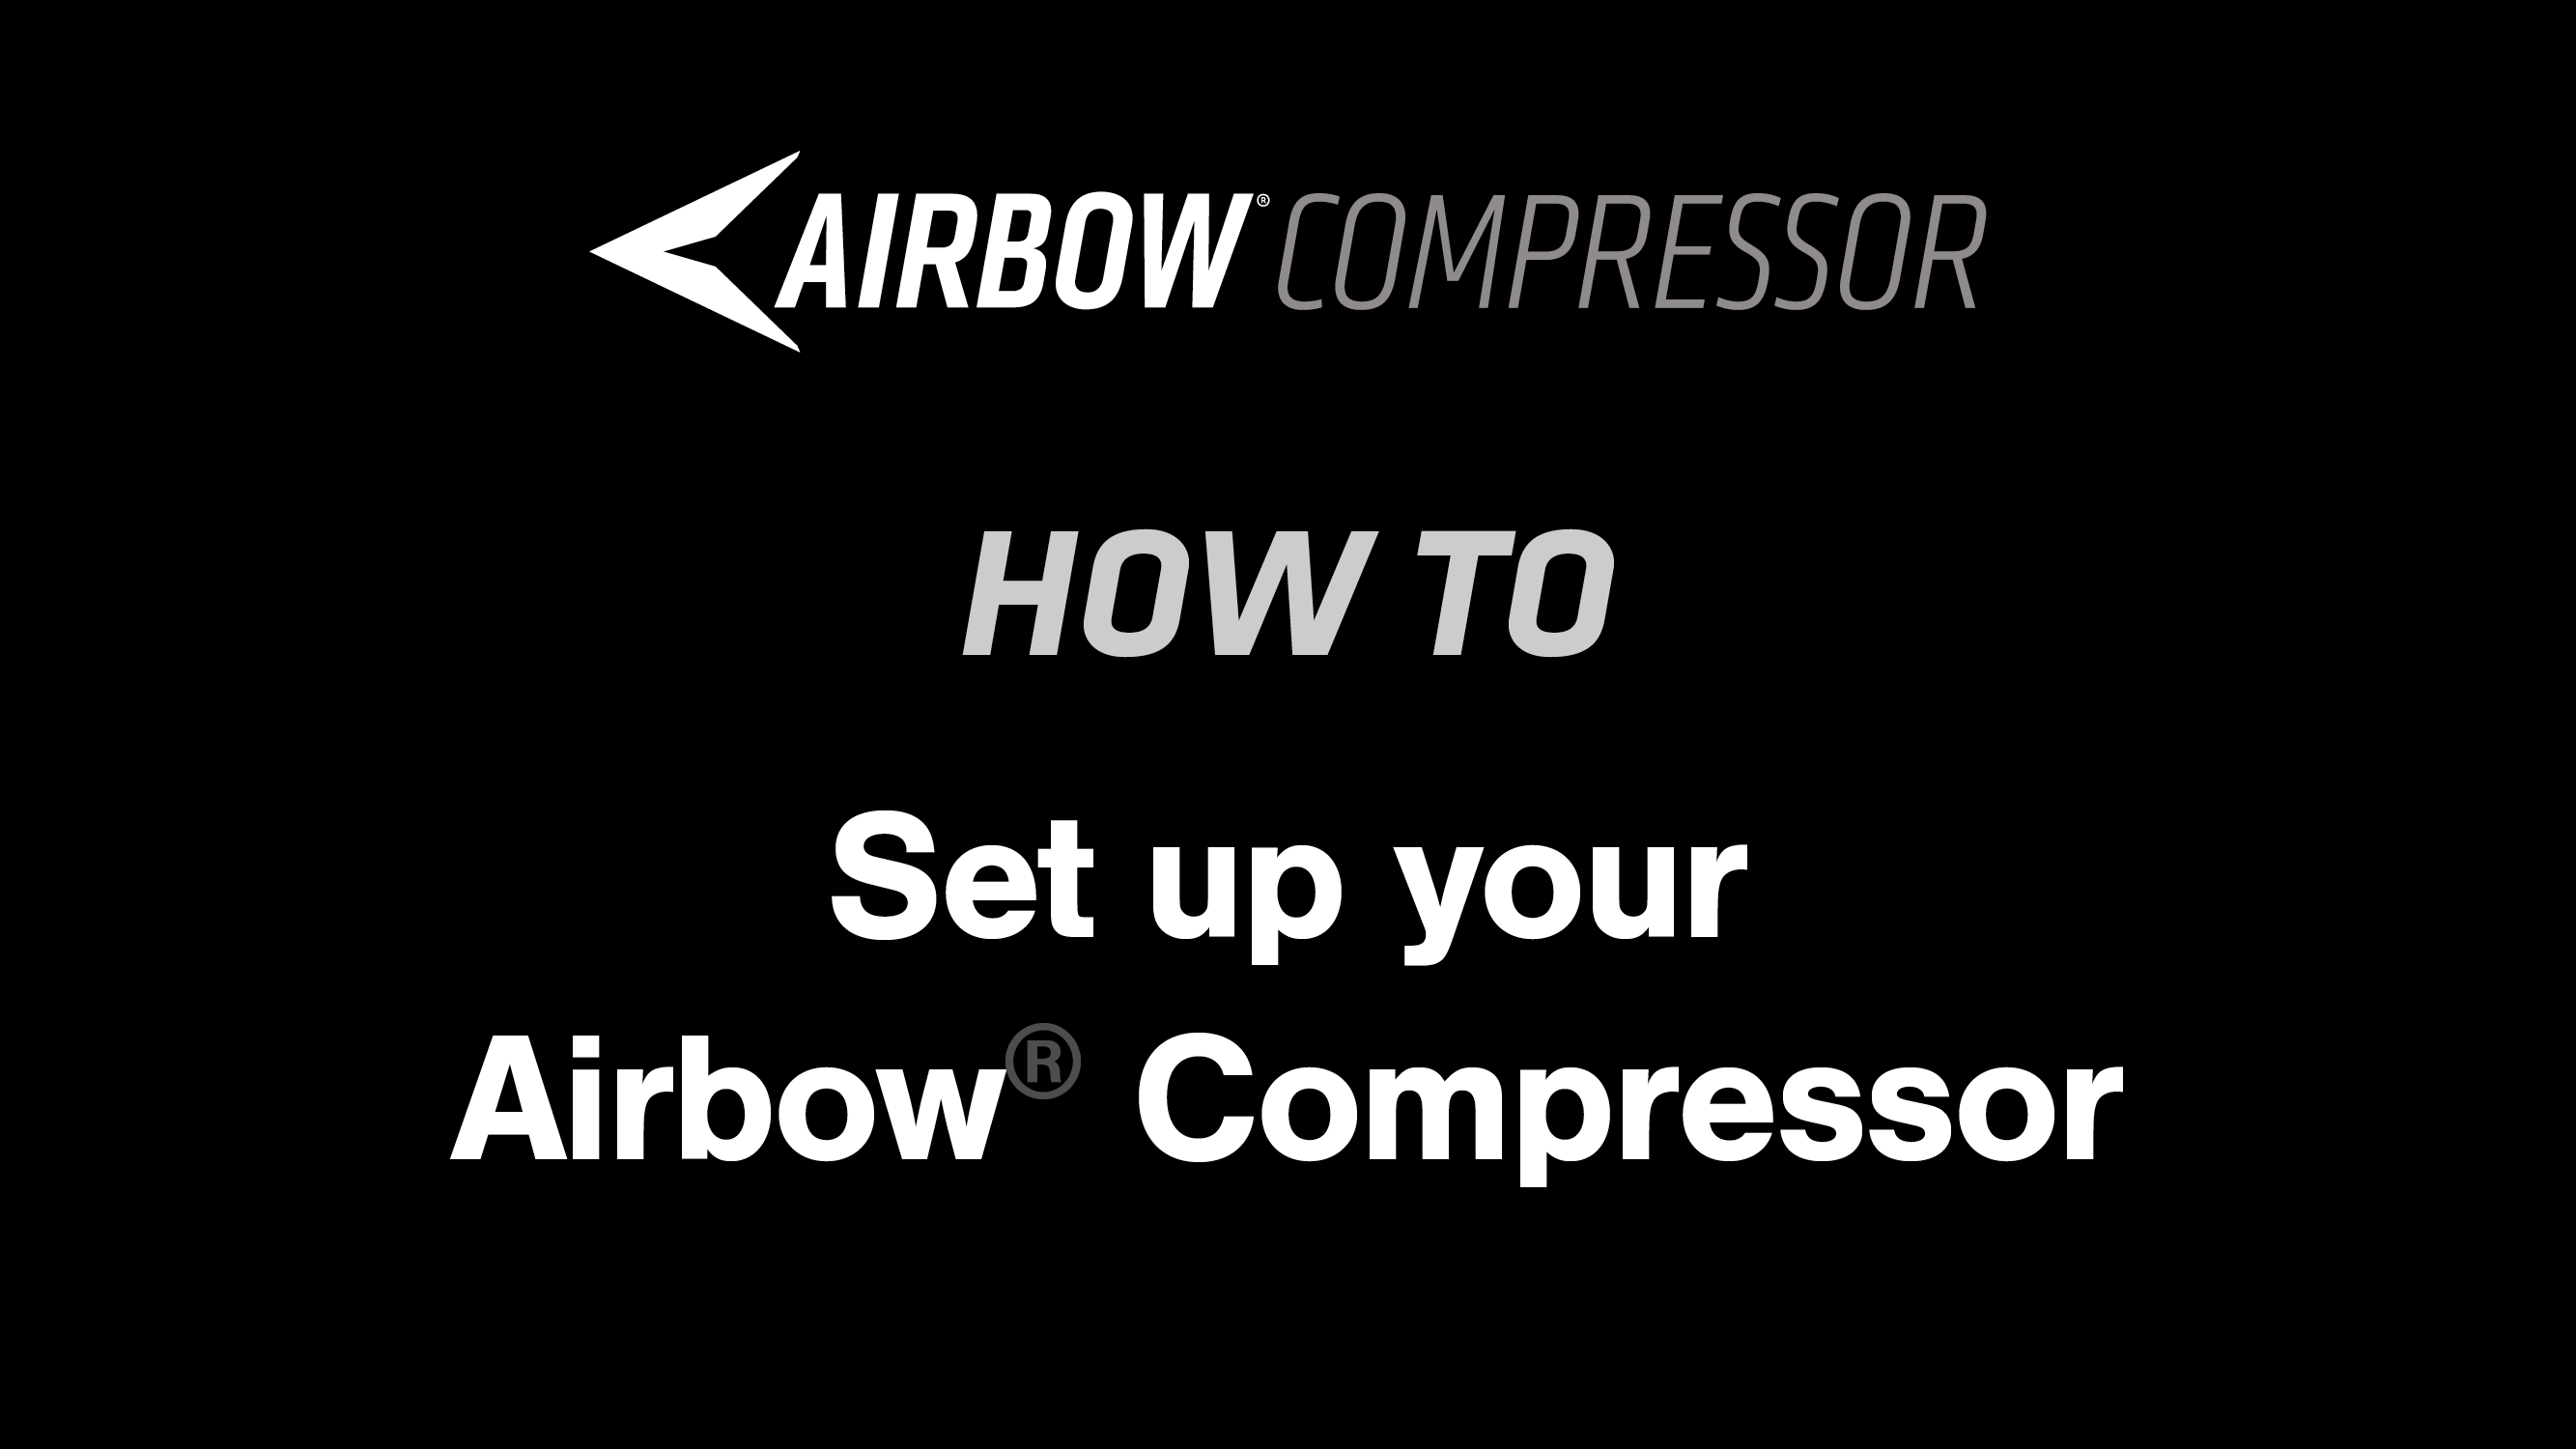 How to: Set up your Airbow® Compressor